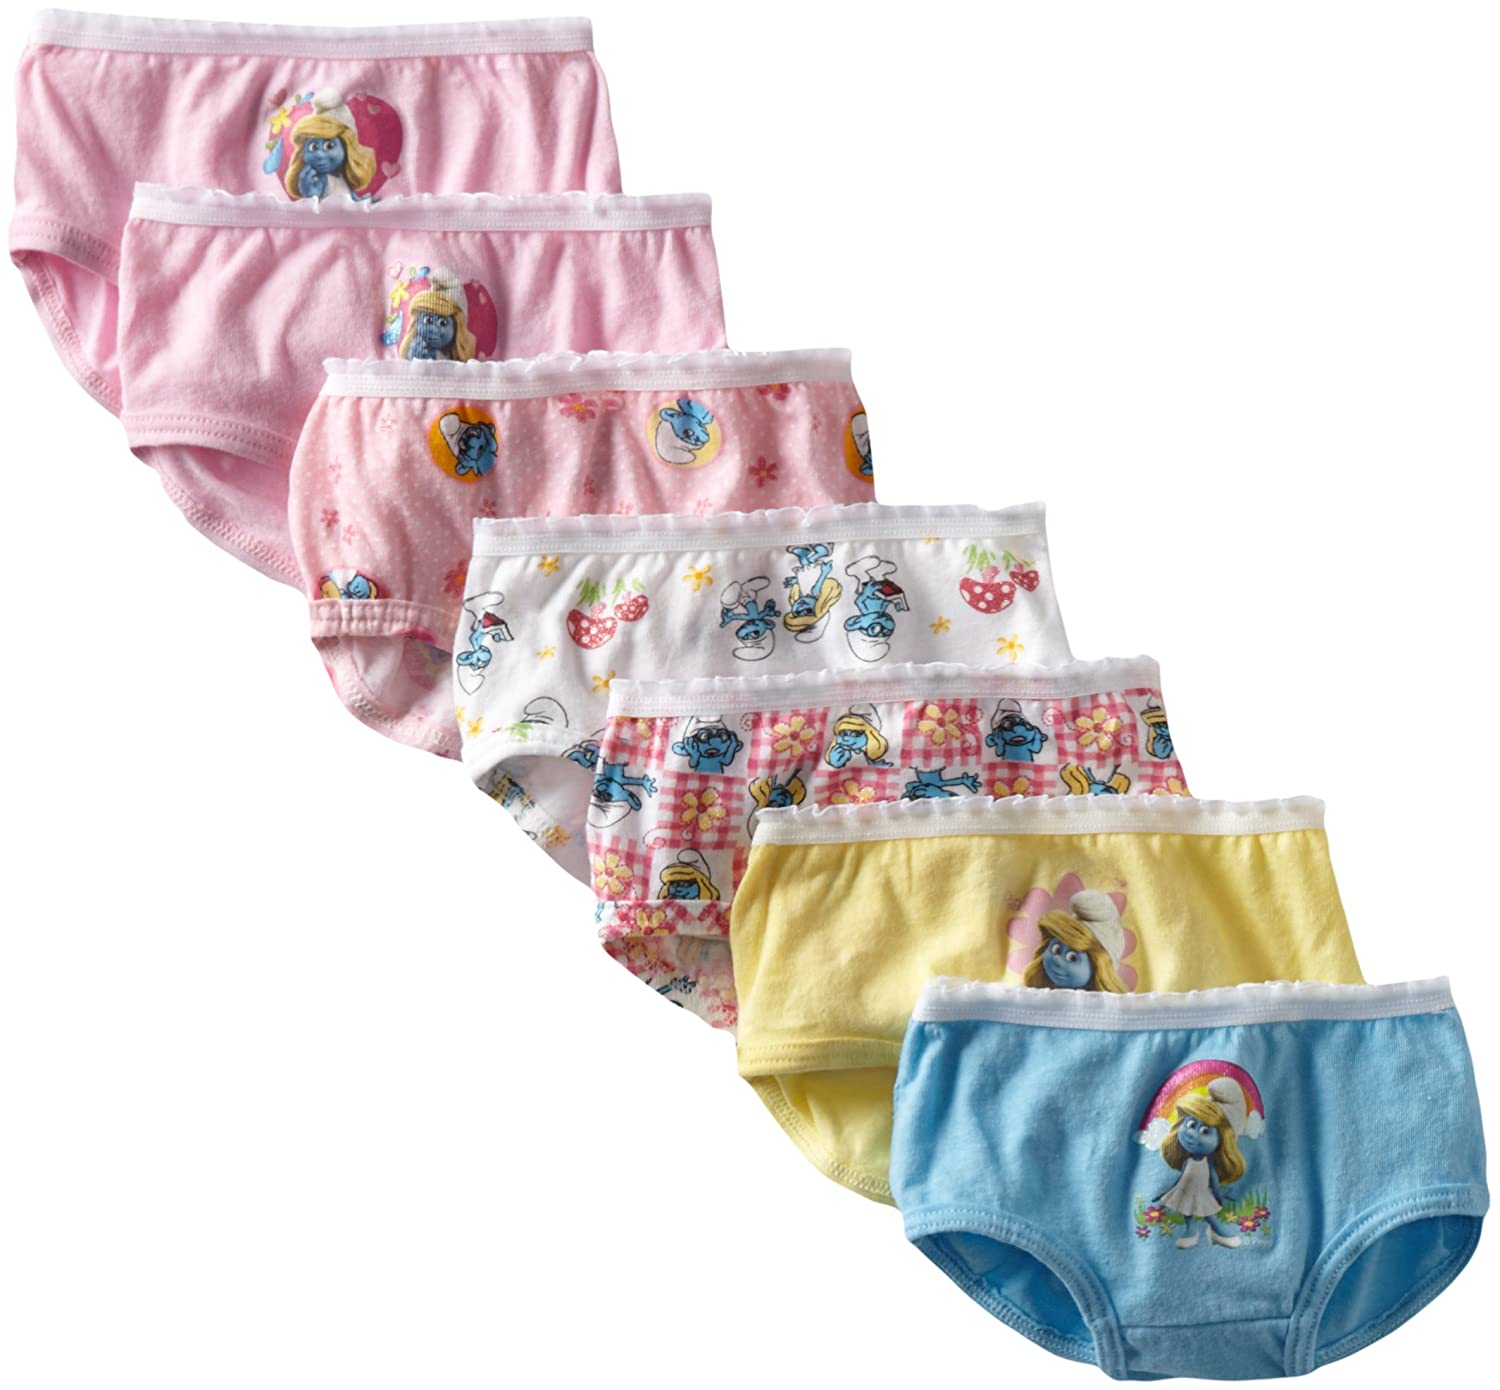 Pack of 7 Fruit of the Loom Little Girls  Juvenile Funpals  Smurfs Panty